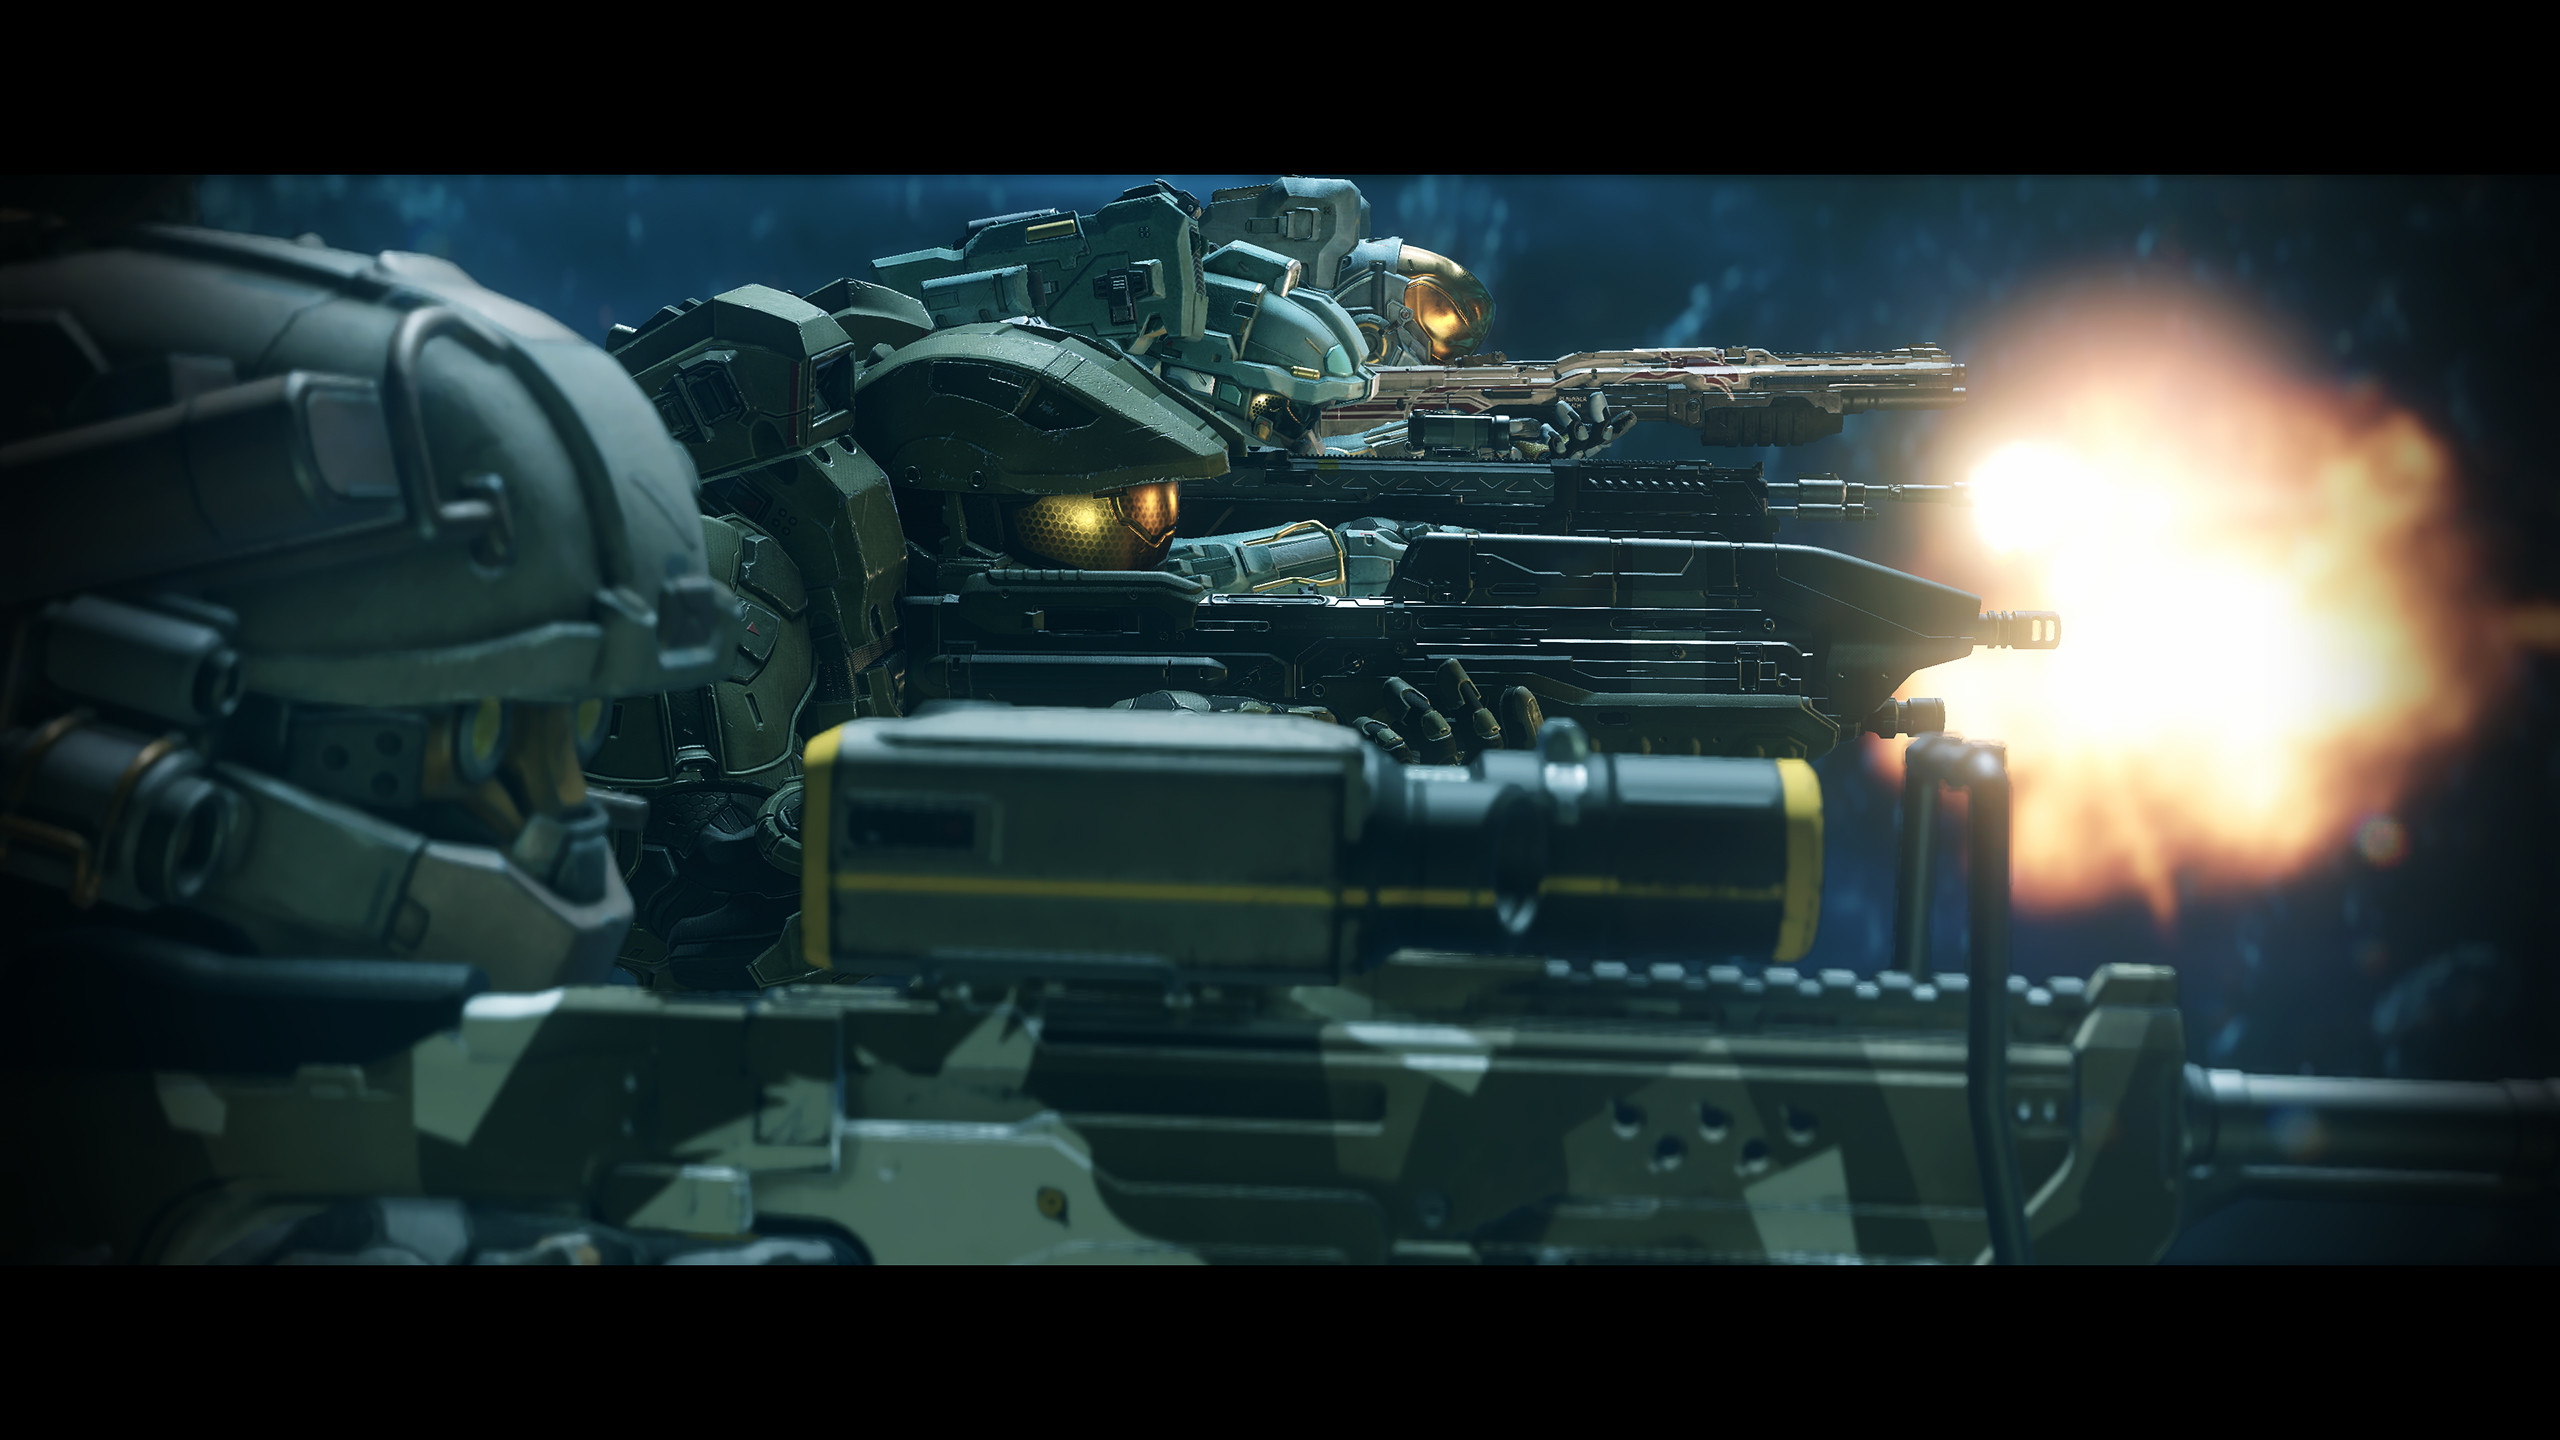 Opening Cinematic for Halo 5: Guardians Mission 2 Blue Team.  H5G-Cinematic-Firing-Line-jpg